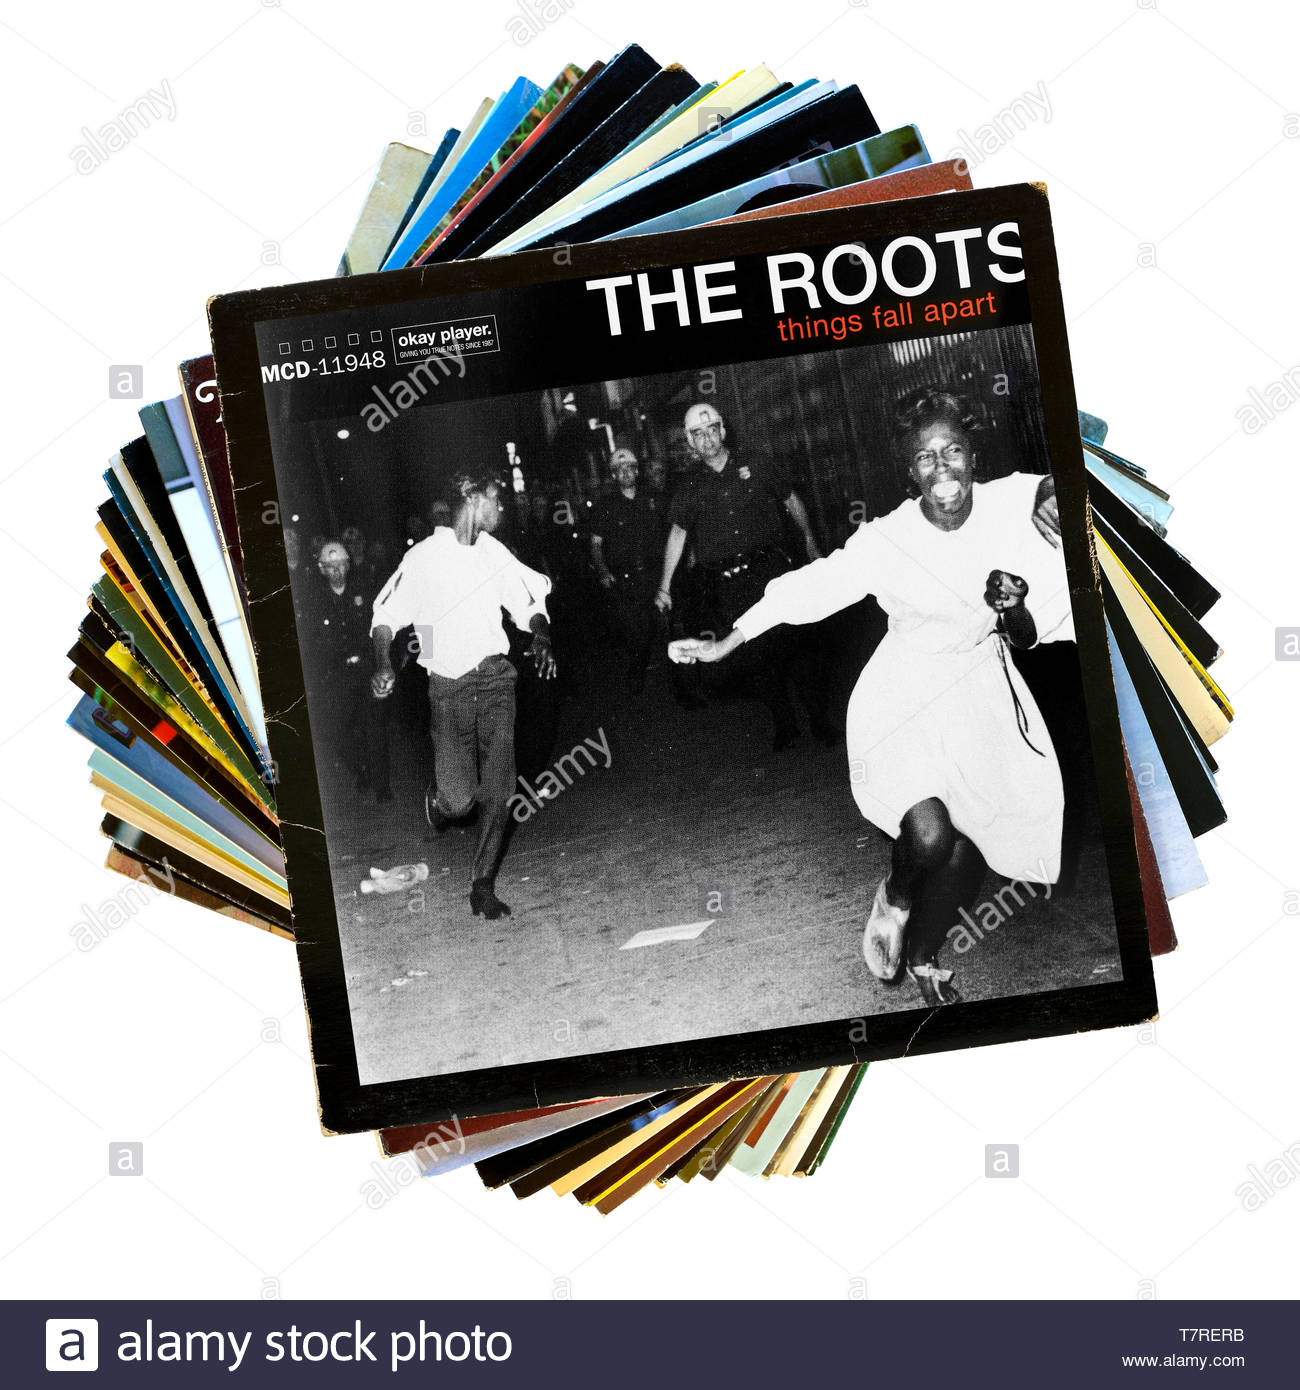 The Roots, Things Fall Apart album, stack of LP records, England - Stock Image